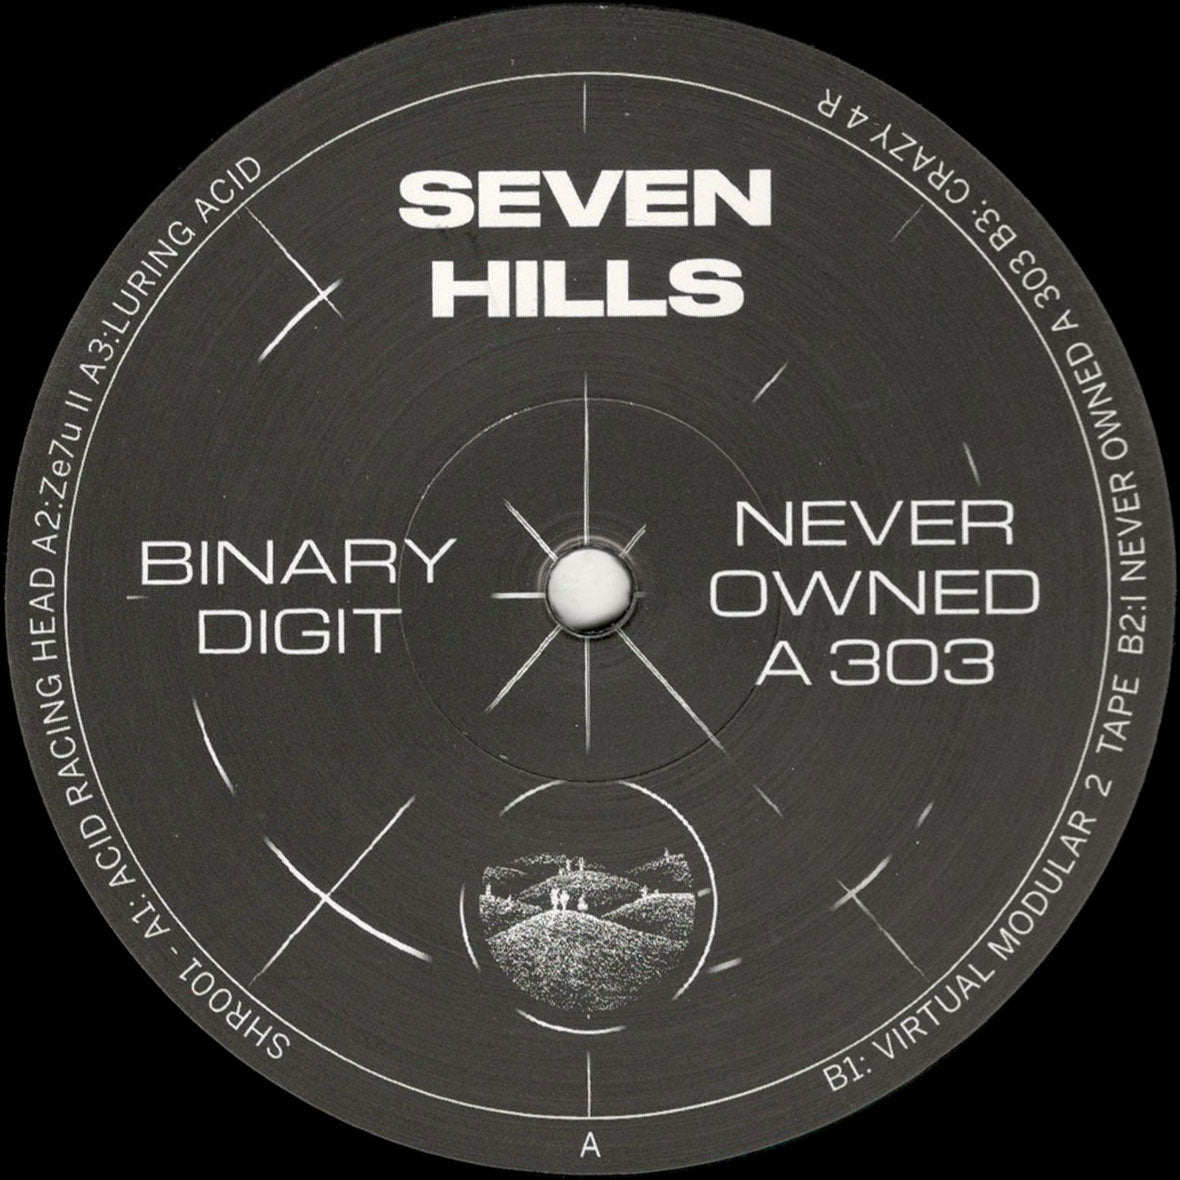 Binary Digit 'Never Owned A 303' 12""